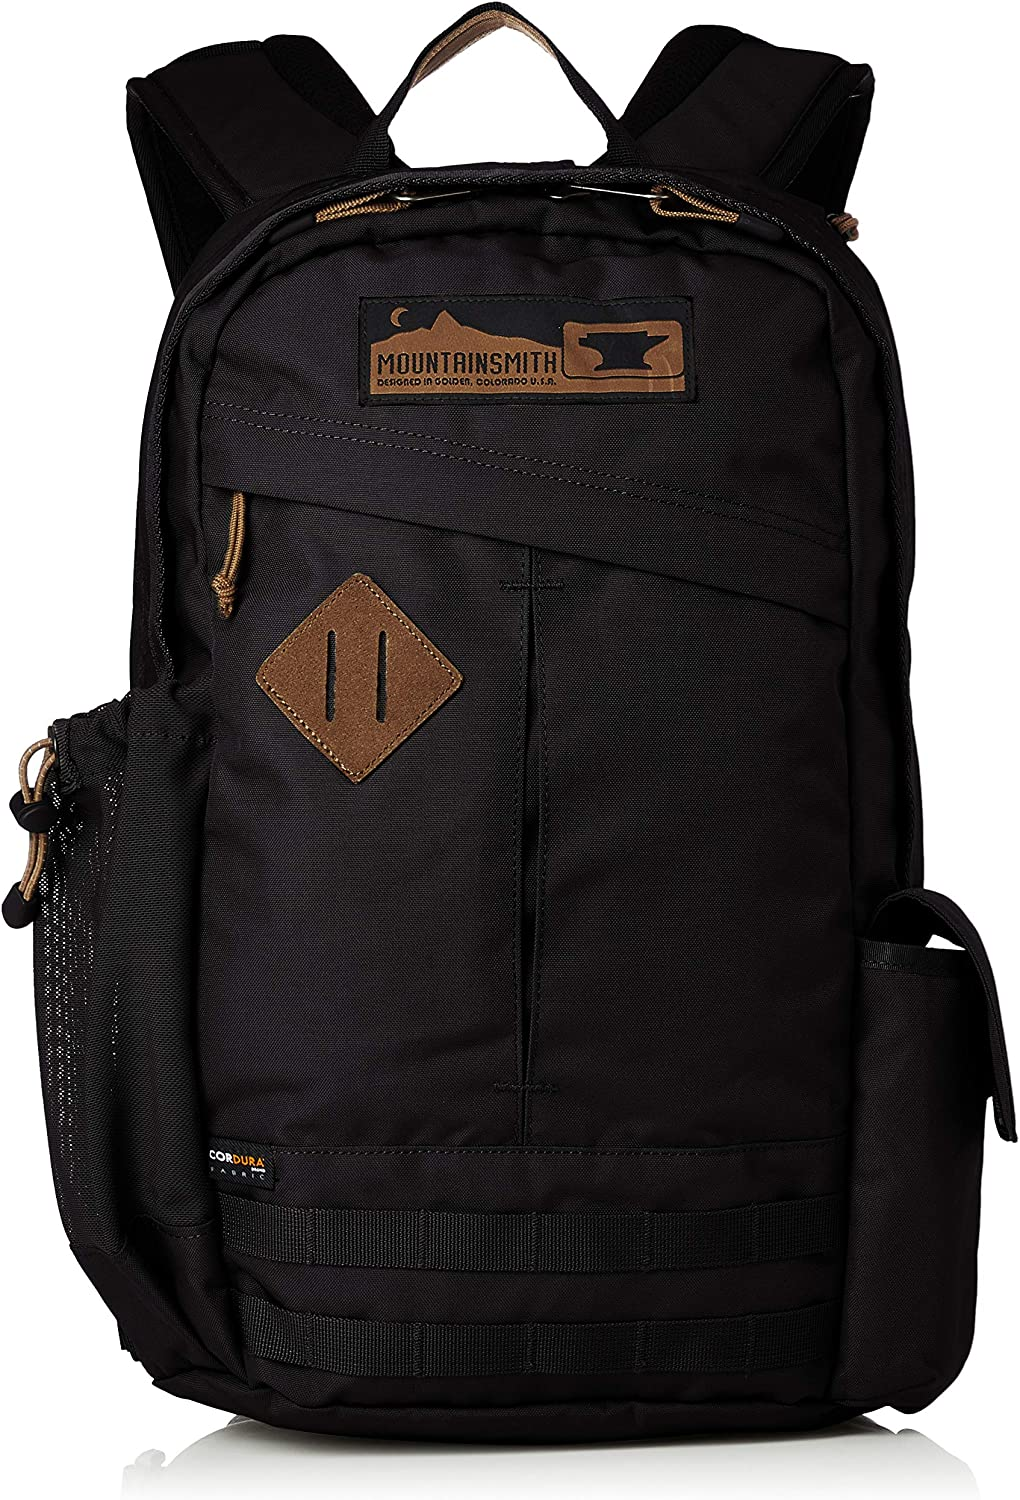 Limited time sale Mountainsmith Divide Backpack Heritage Black 18-7535 One Size Now on sale